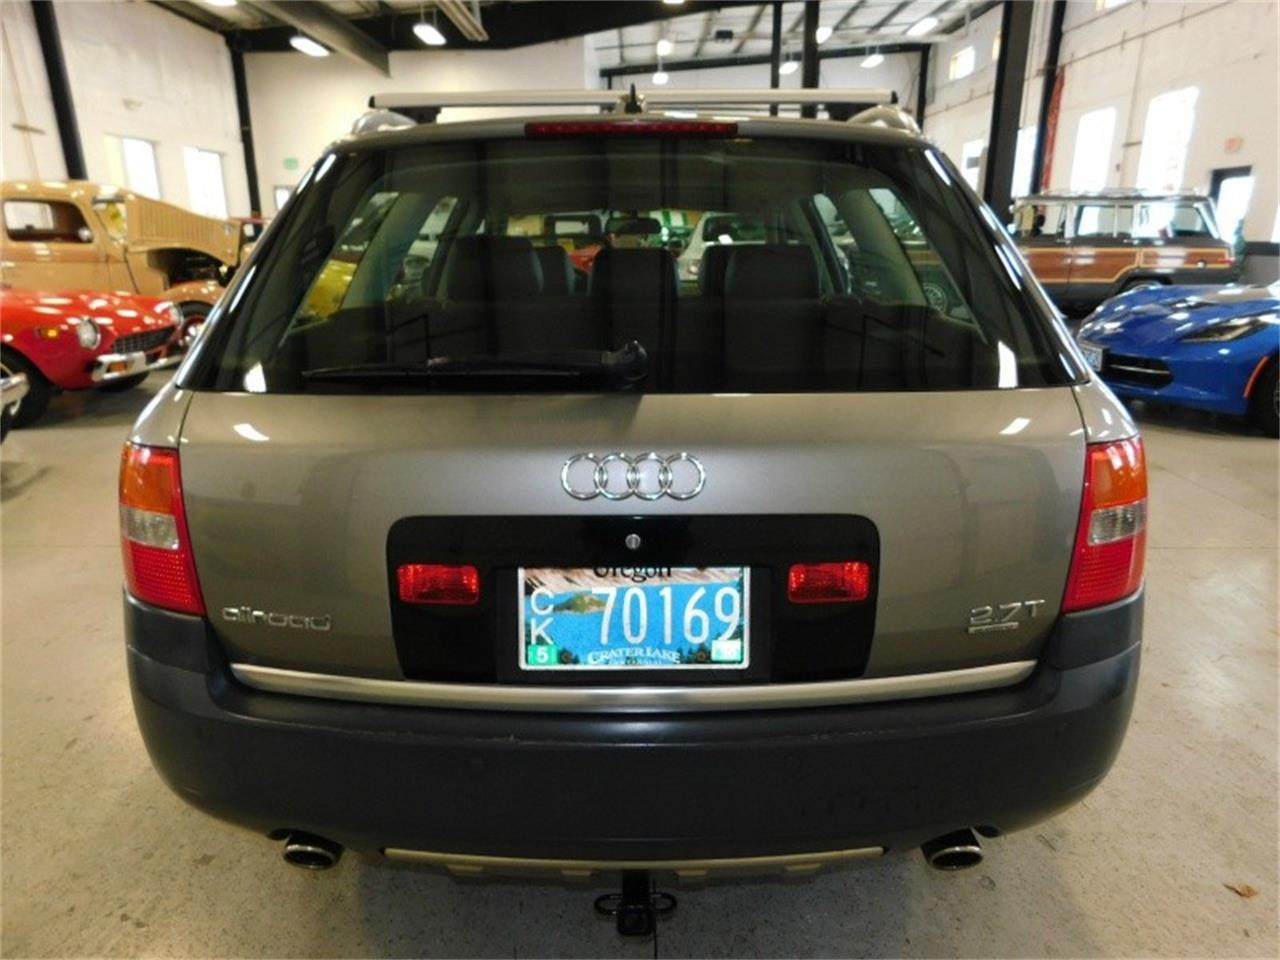 2004 Audi A4 (CC-1229154) for sale in Bend, Oregon